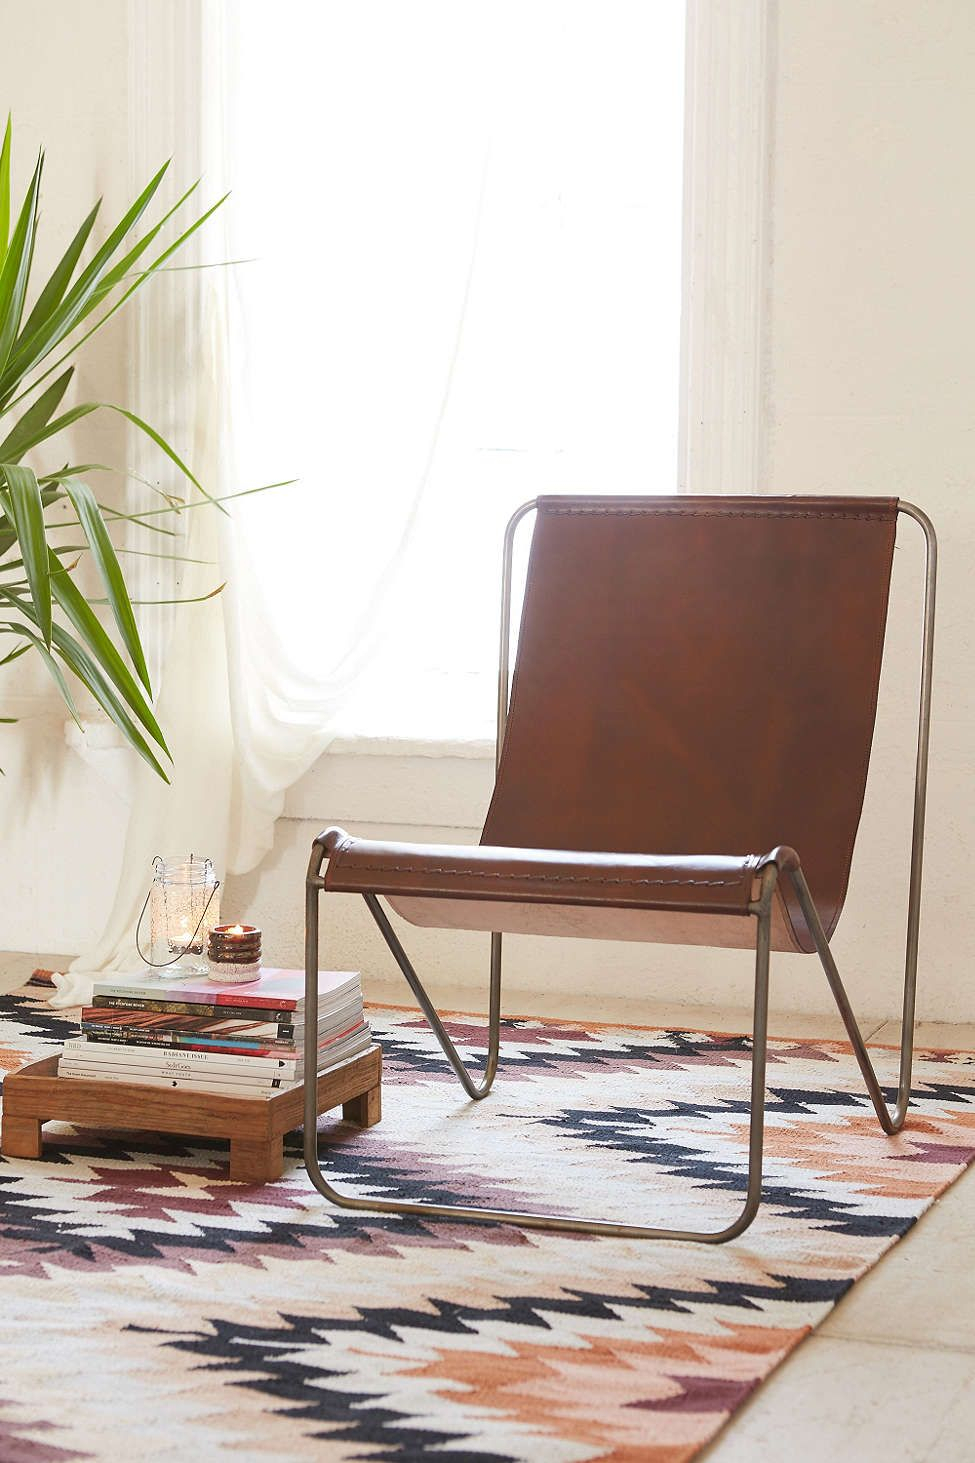 Maddox Leather Sling Chair | Chairs | Pinterest | Chair, Leather In Maddox Oversized Sofa Chairs (View 6 of 25)